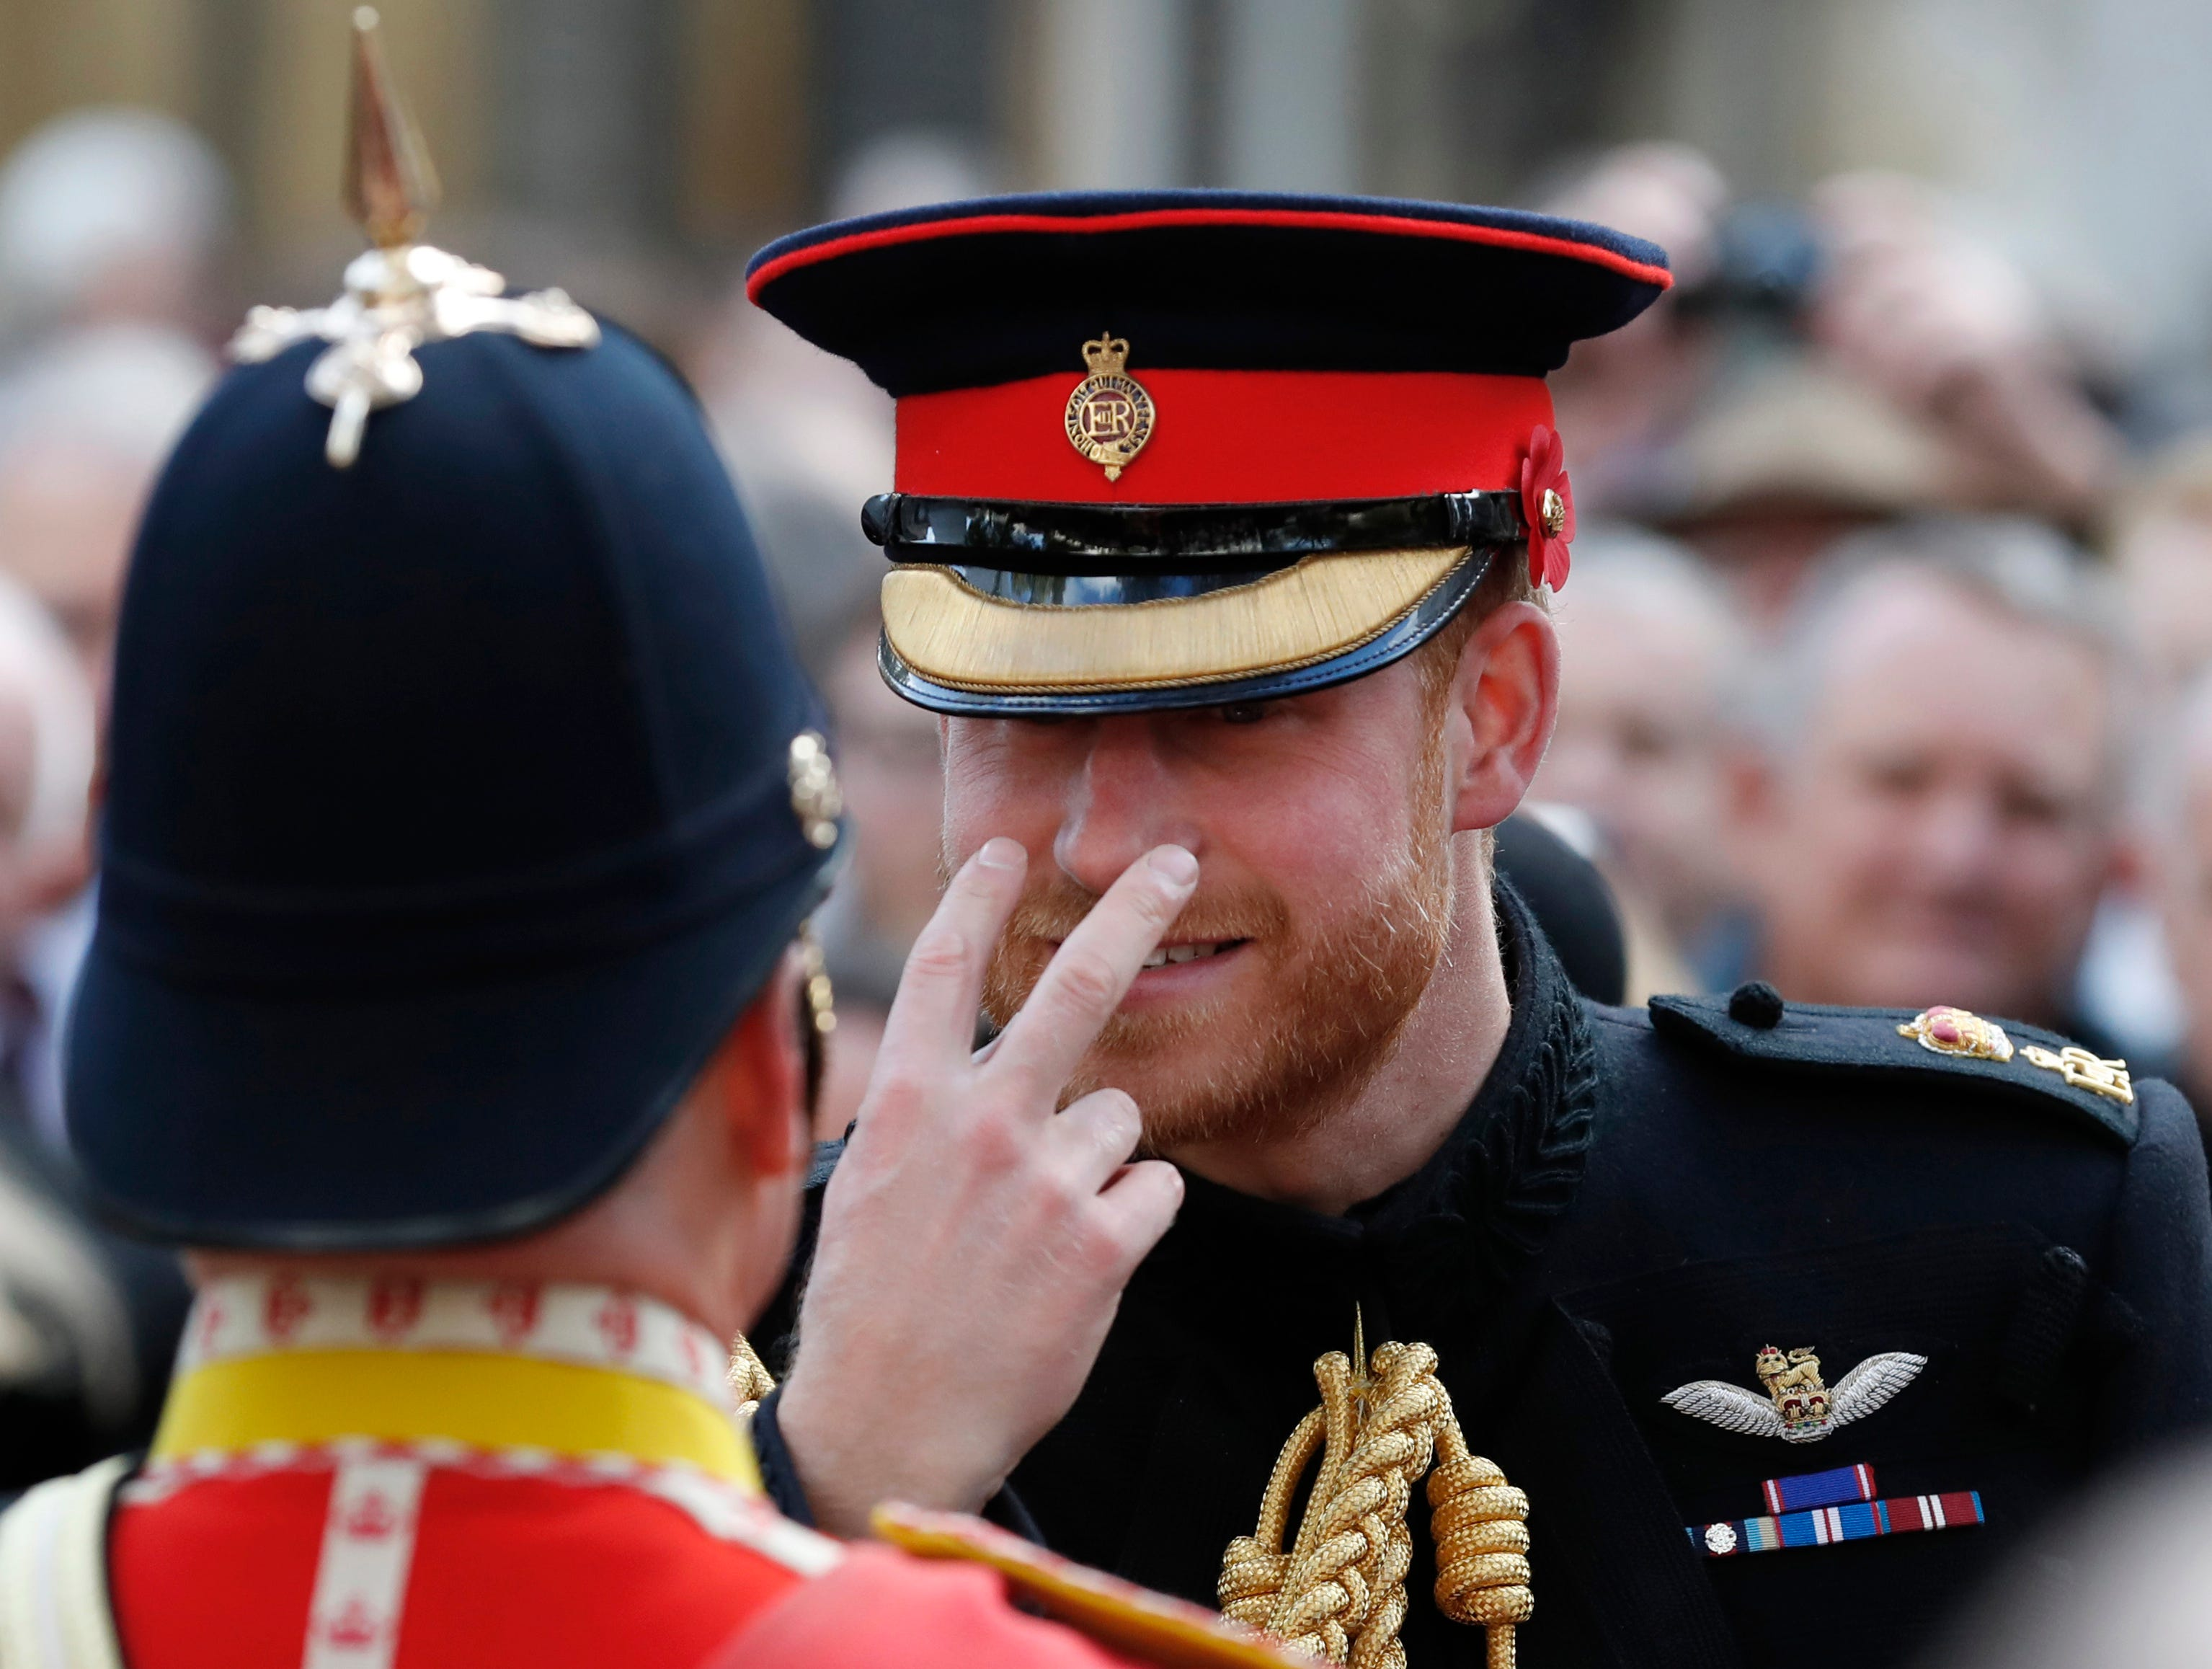 Britain's Prince Harry gestures to a serviceman as he attends the annual Field of Remembrance service at Westminster Abbey in London, Thursday, Nov. 8, 2018. The centenary of the end of hostilities in World War I will be marked with large commemoration services in London, Paris and on the battlefields of northern France, on Sunday, Nov. 11.